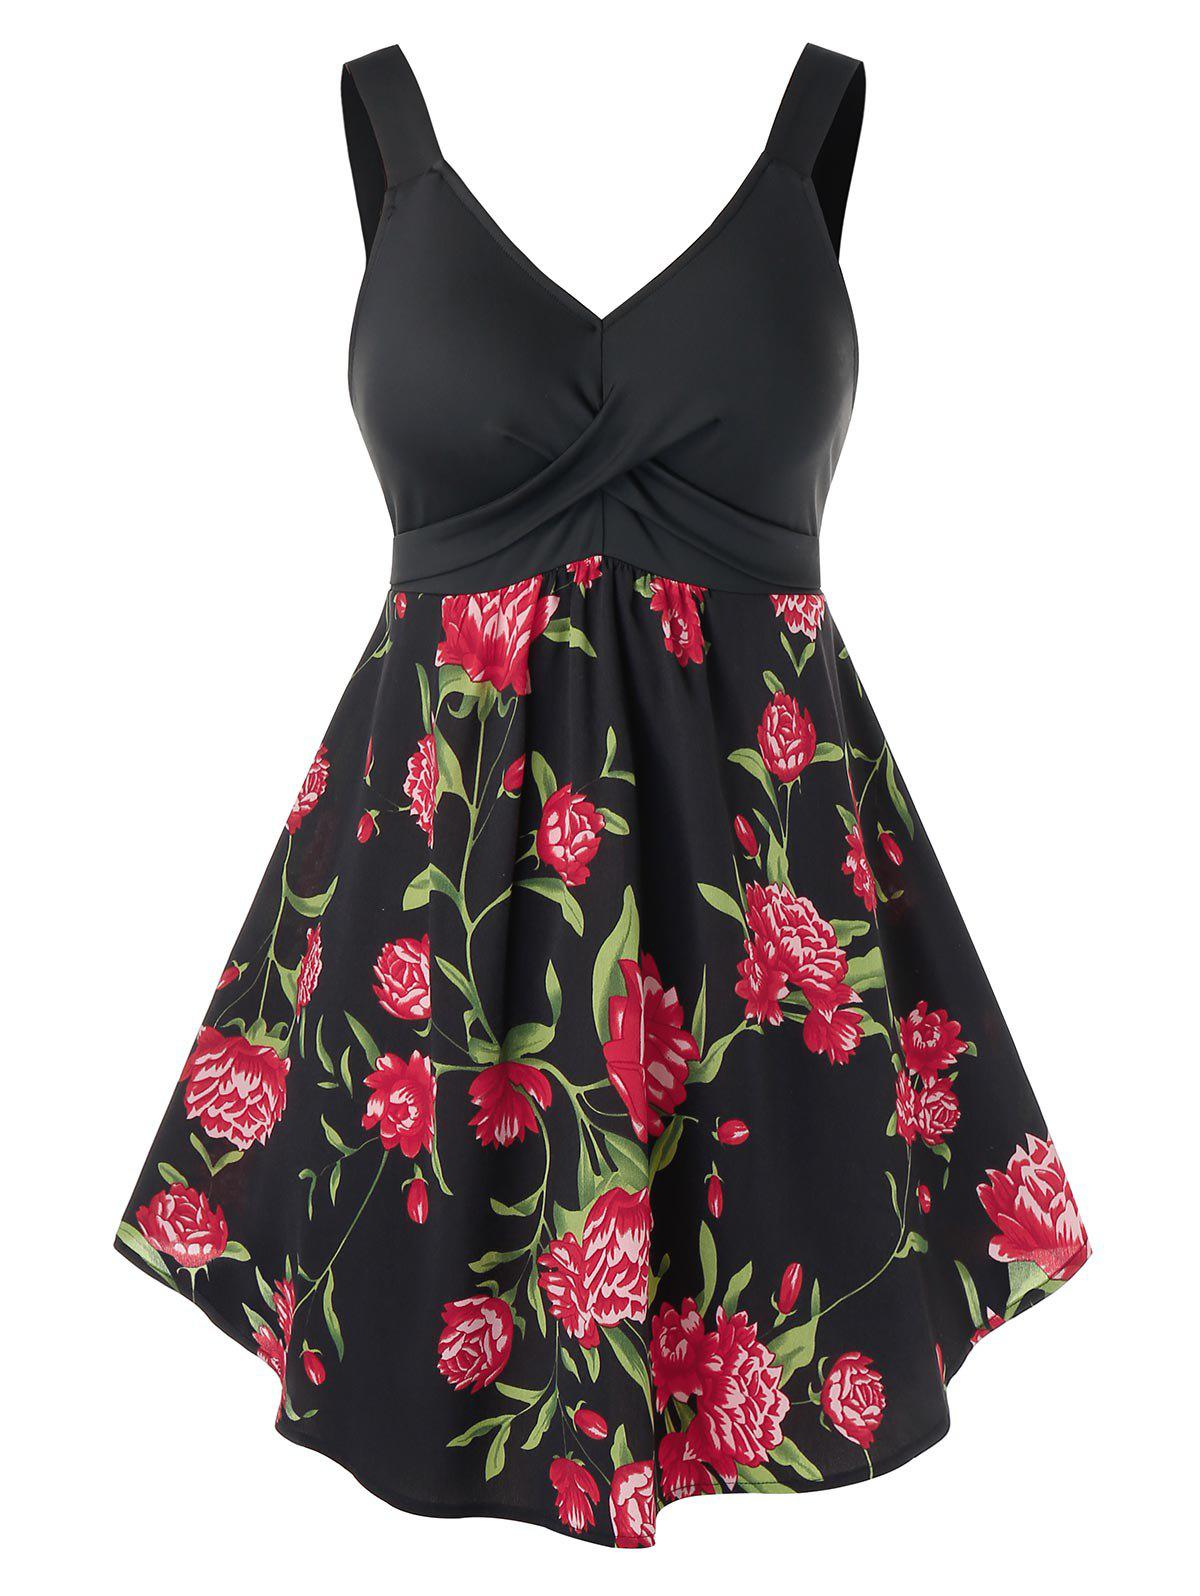 Plus Size Floral Printed Tank Top - BLACK 3X